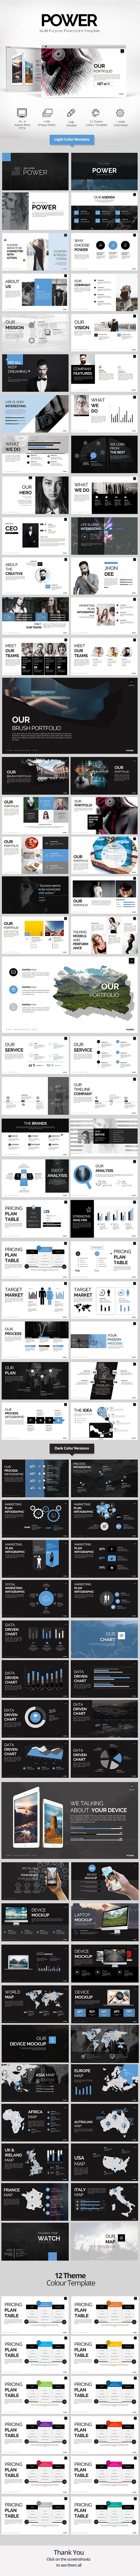 Power Powerpoint Presentation